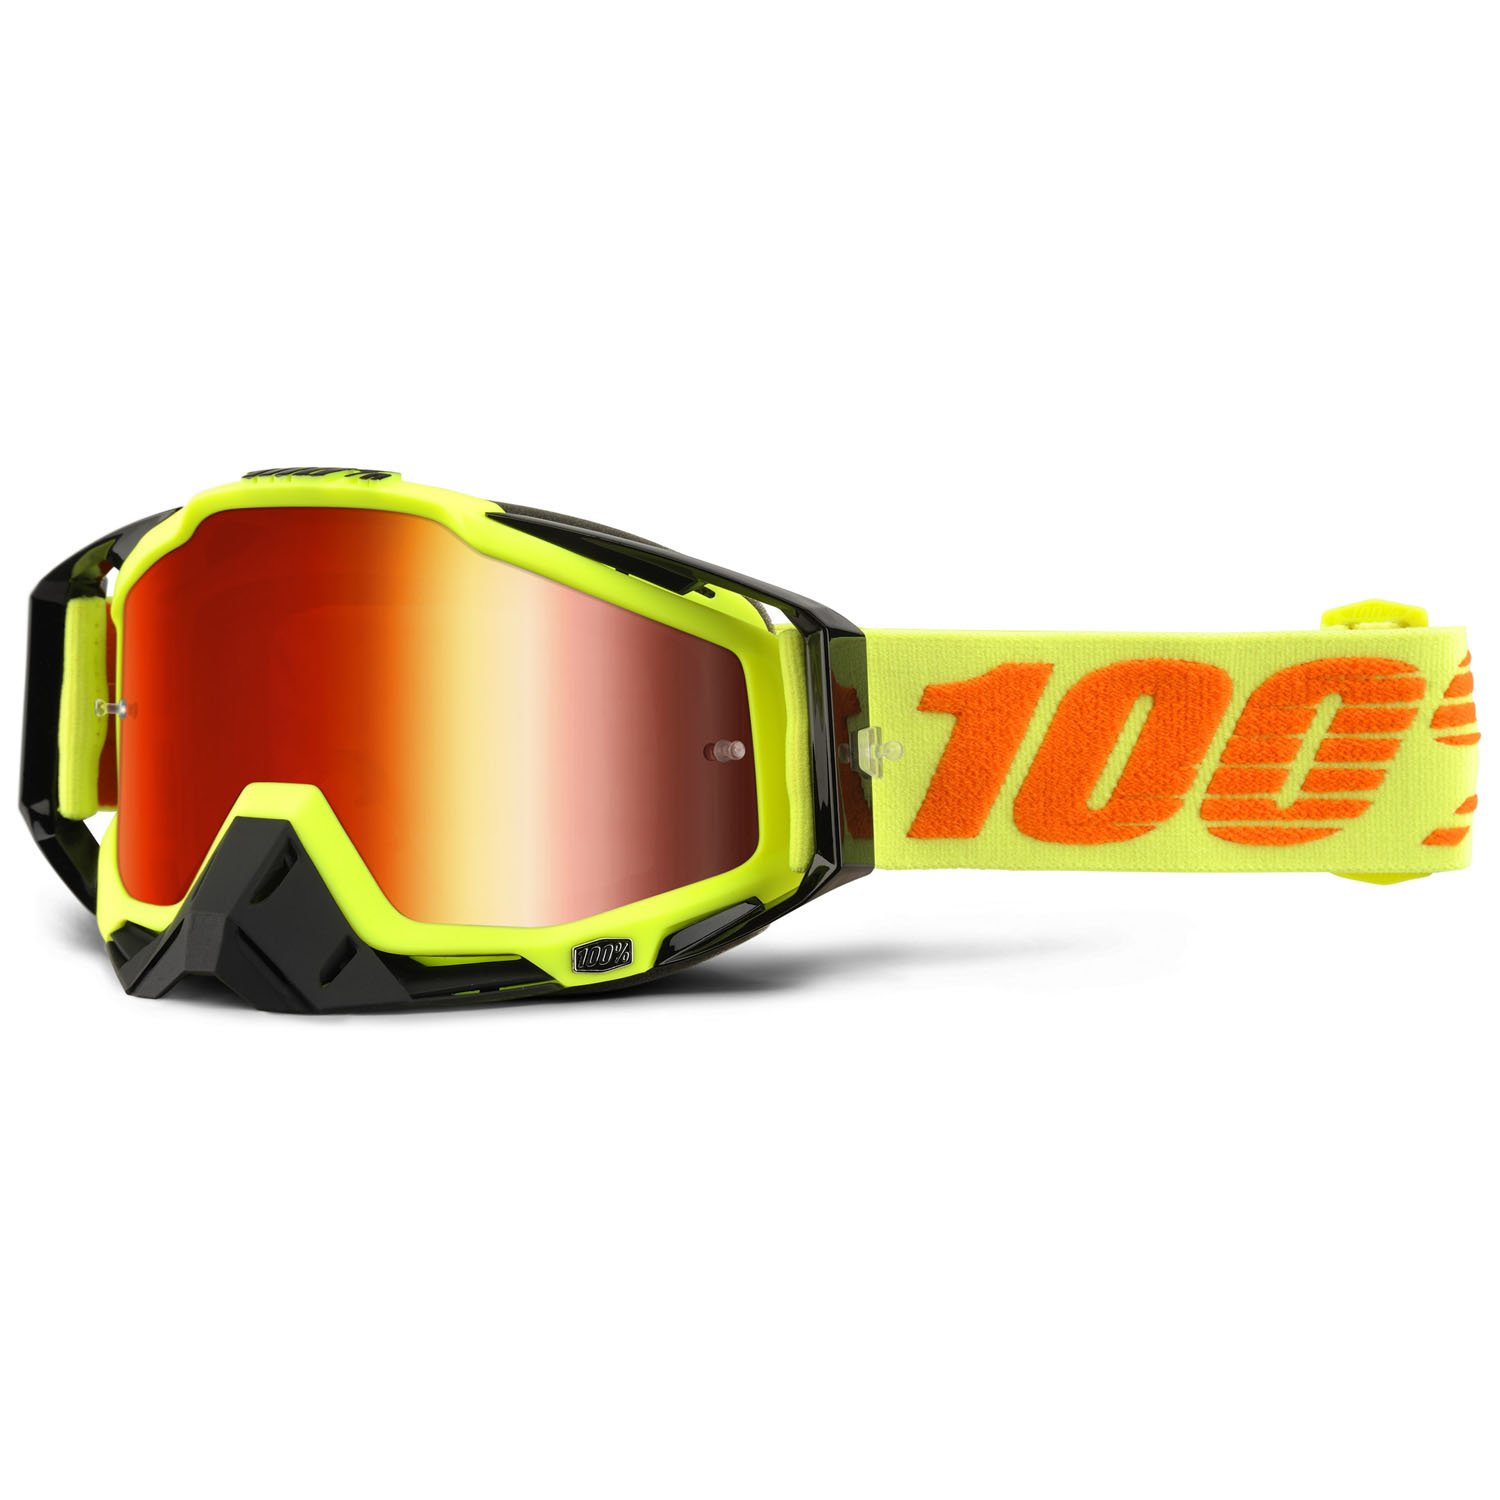 100% RACECRAFT EXTRA Crossbrille - Attack Yellow Grö ß e UNI Z5570-110-026-02